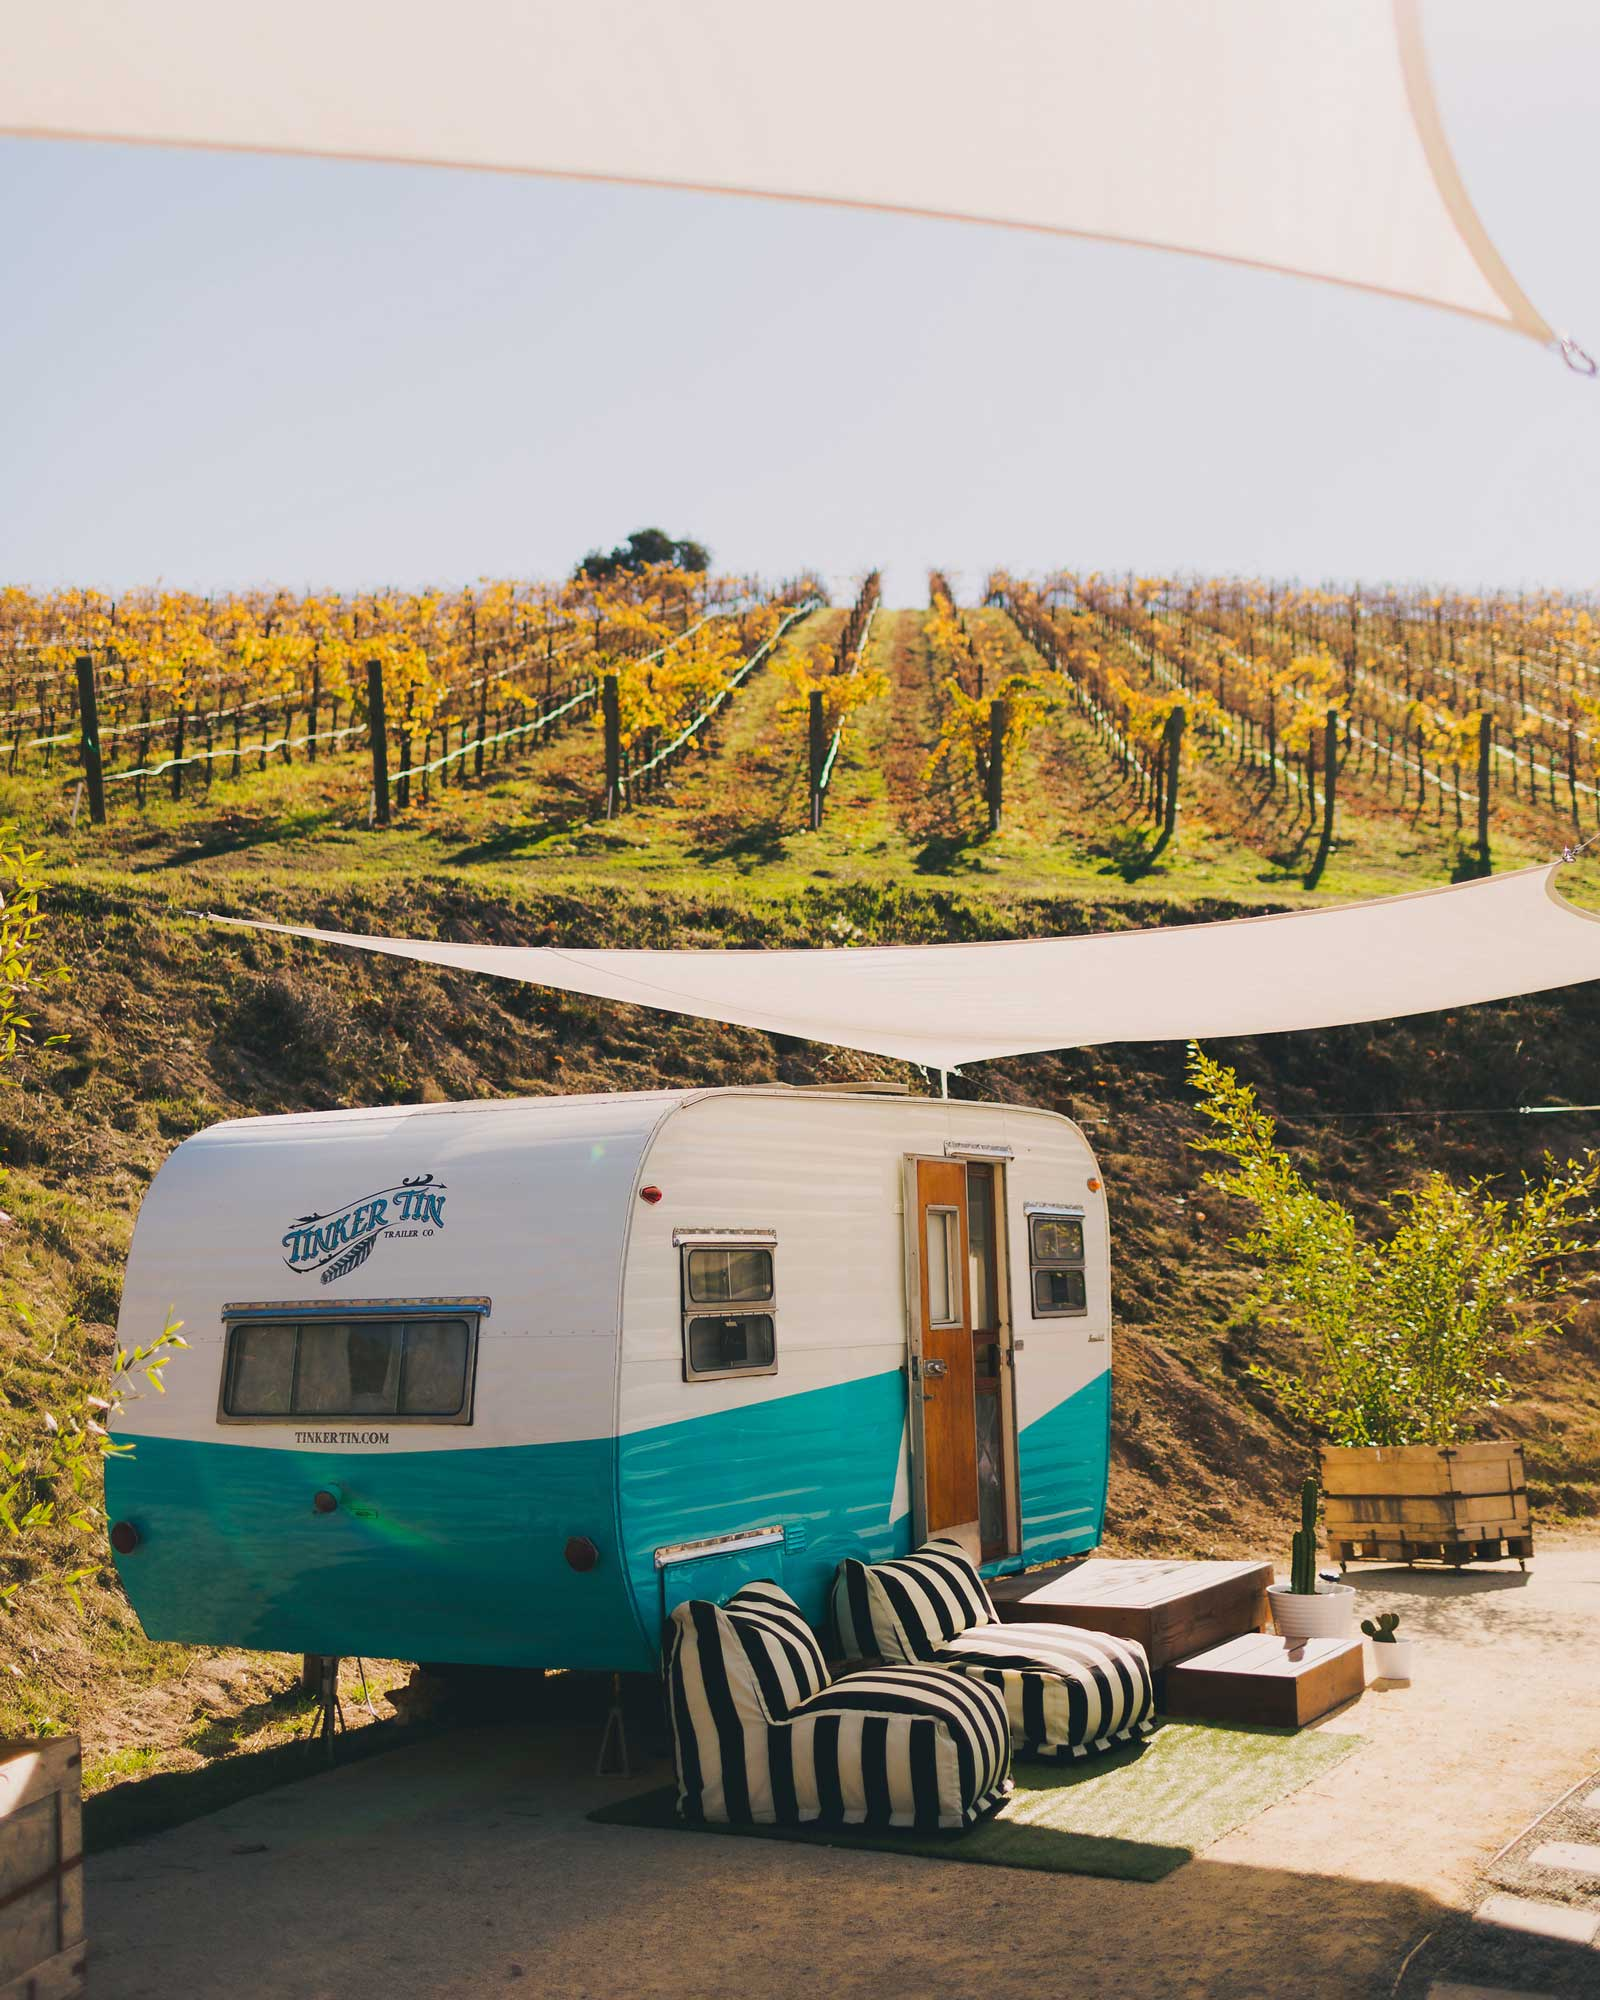 Grab Your Girlfriends and Spend a Weekend Drinking Wine in Vintage Campers at This Scenic Vineyard